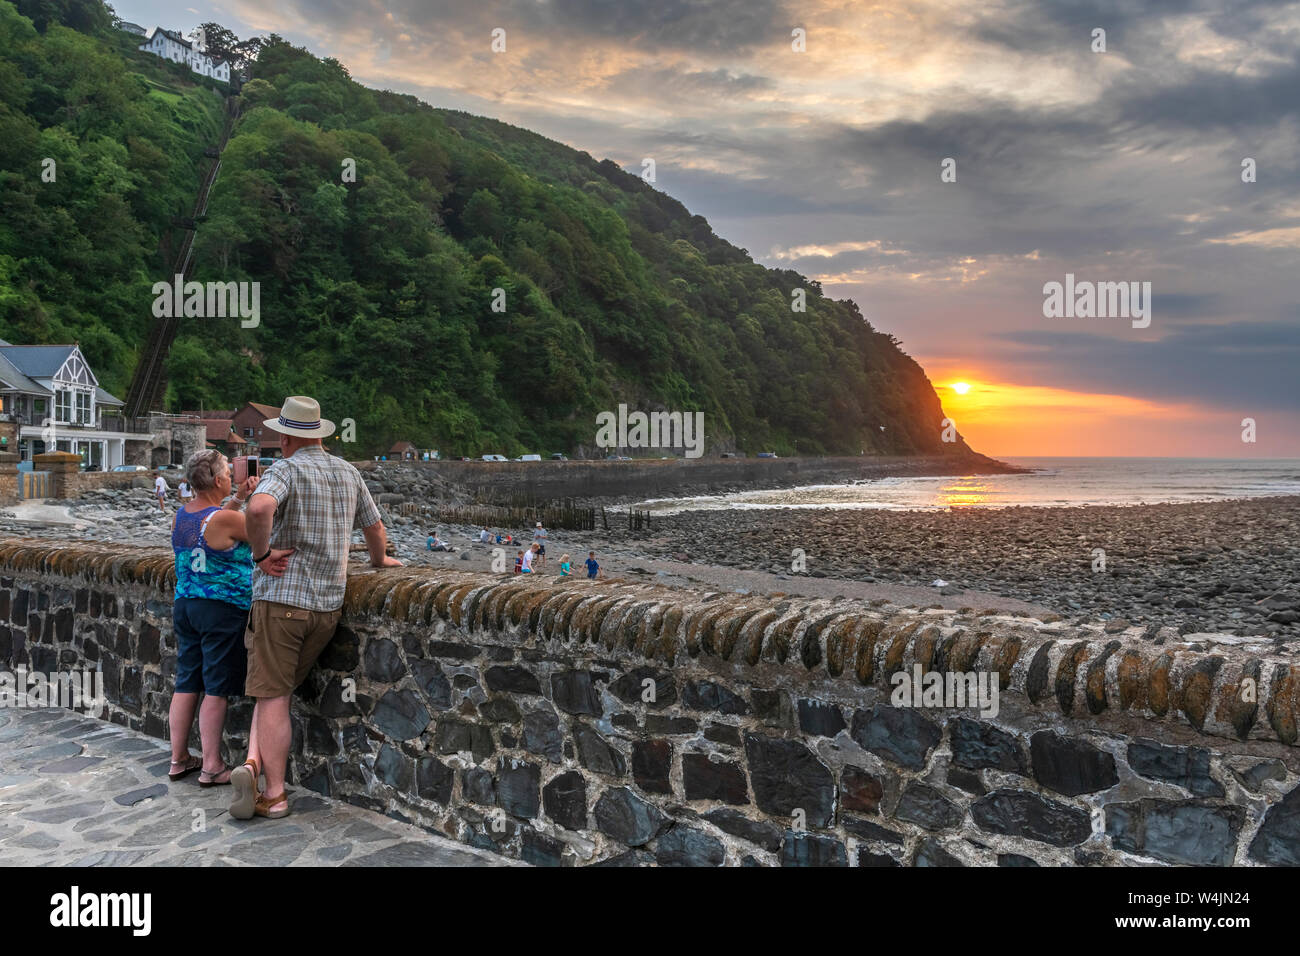 Lynmouth Harbour, North Devon, England. Tuesday 23rd July 2019. UK Weather. The calm before the storm. After a hot summers day in North Devon, at sunset people still play on the beach as a couple record the colourful sunset  over the picturesque little harbour in Lynmouth. Credit: Terry Mathews/Alamy Live News Stock Photo